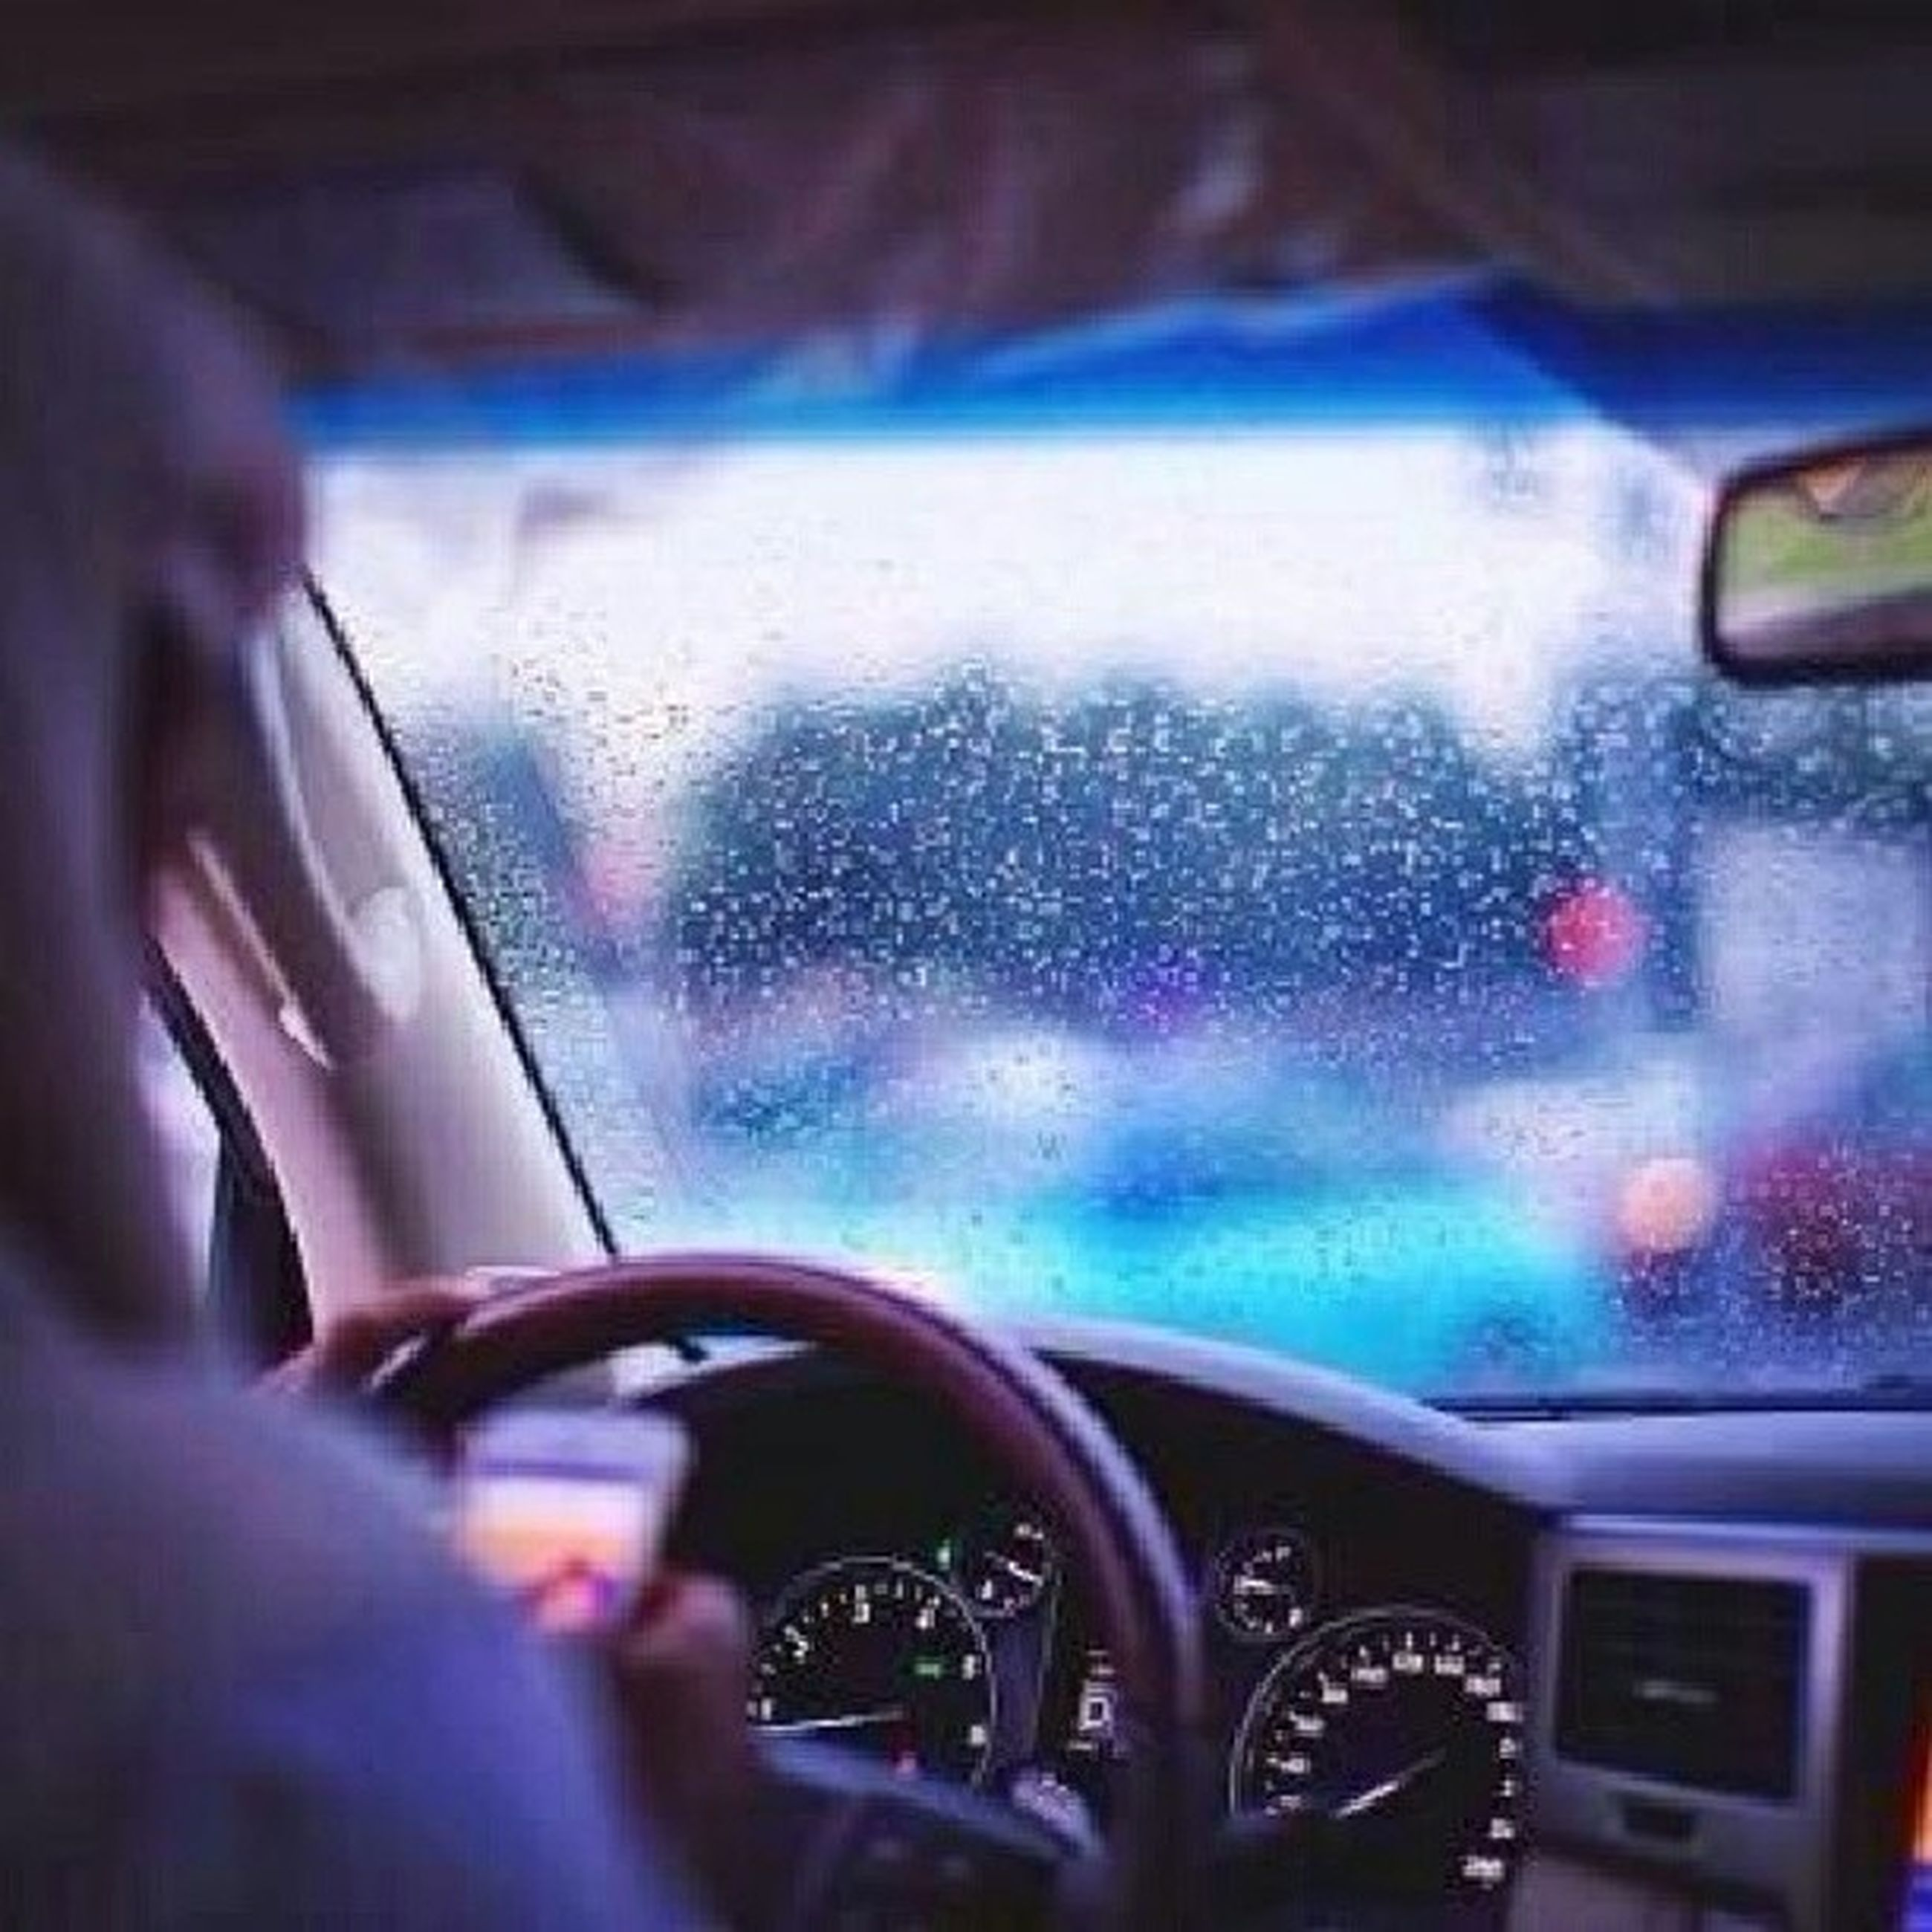 transportation, vehicle interior, mode of transport, land vehicle, car, glass - material, transparent, car interior, window, windshield, part of, travel, indoors, close-up, cropped, one person, drop, journey, side-view mirror, wet